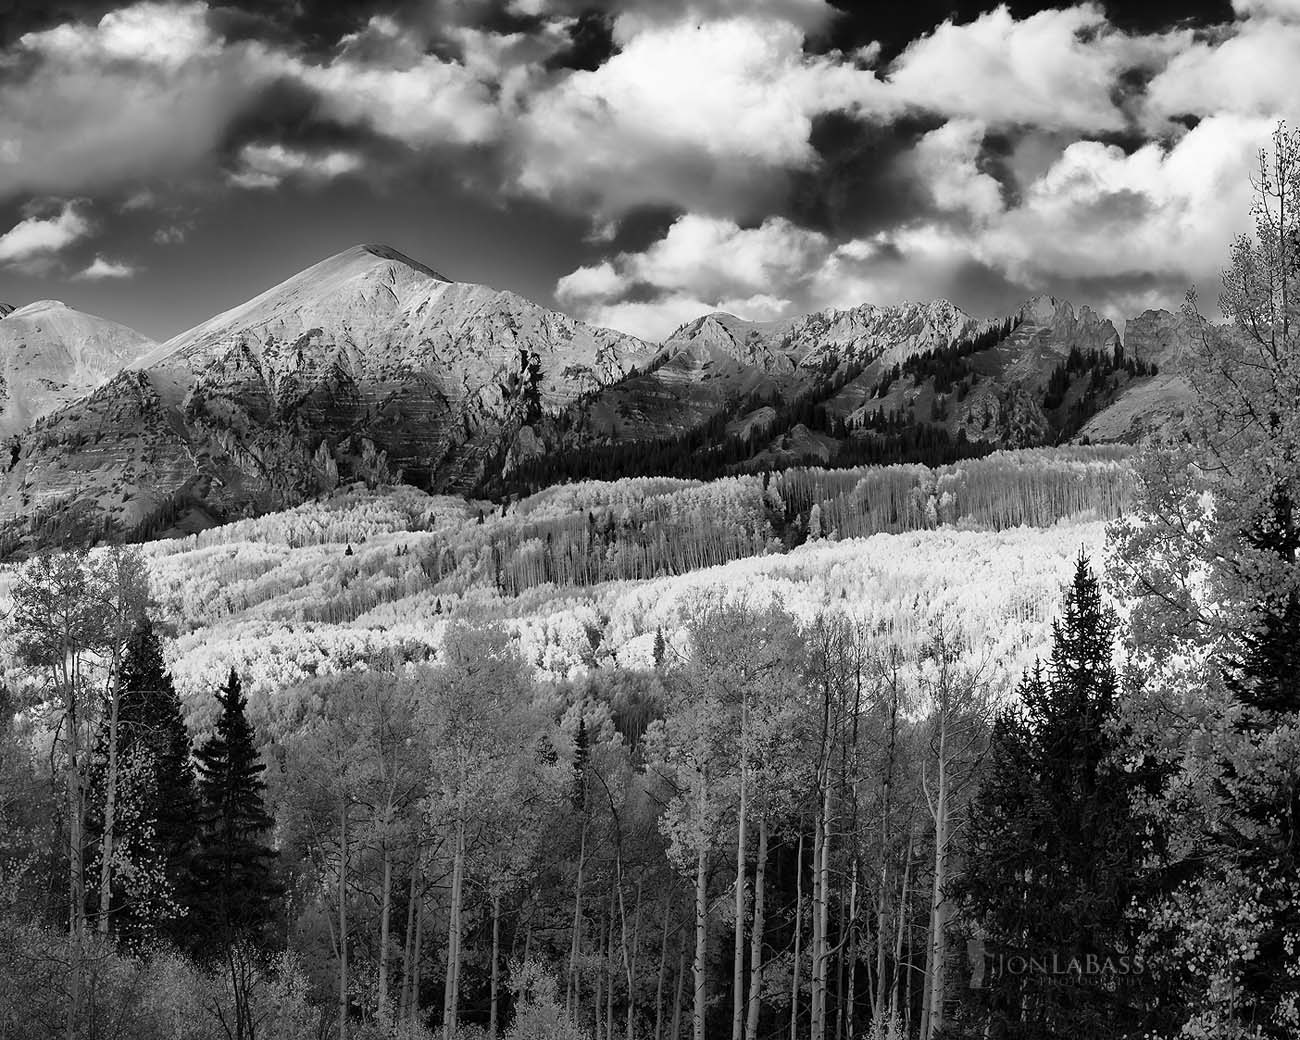 Aspen Trees, Aspens, Autumn, Black & White, Black and White, Clouds, Colorado, Colorado Rockies, Colorado Rocky Mountains, Evening, Fall, Gunnison National Forest, Kebler Pass, Rockies, Rocky Mountains, Sunset, Trees, United States